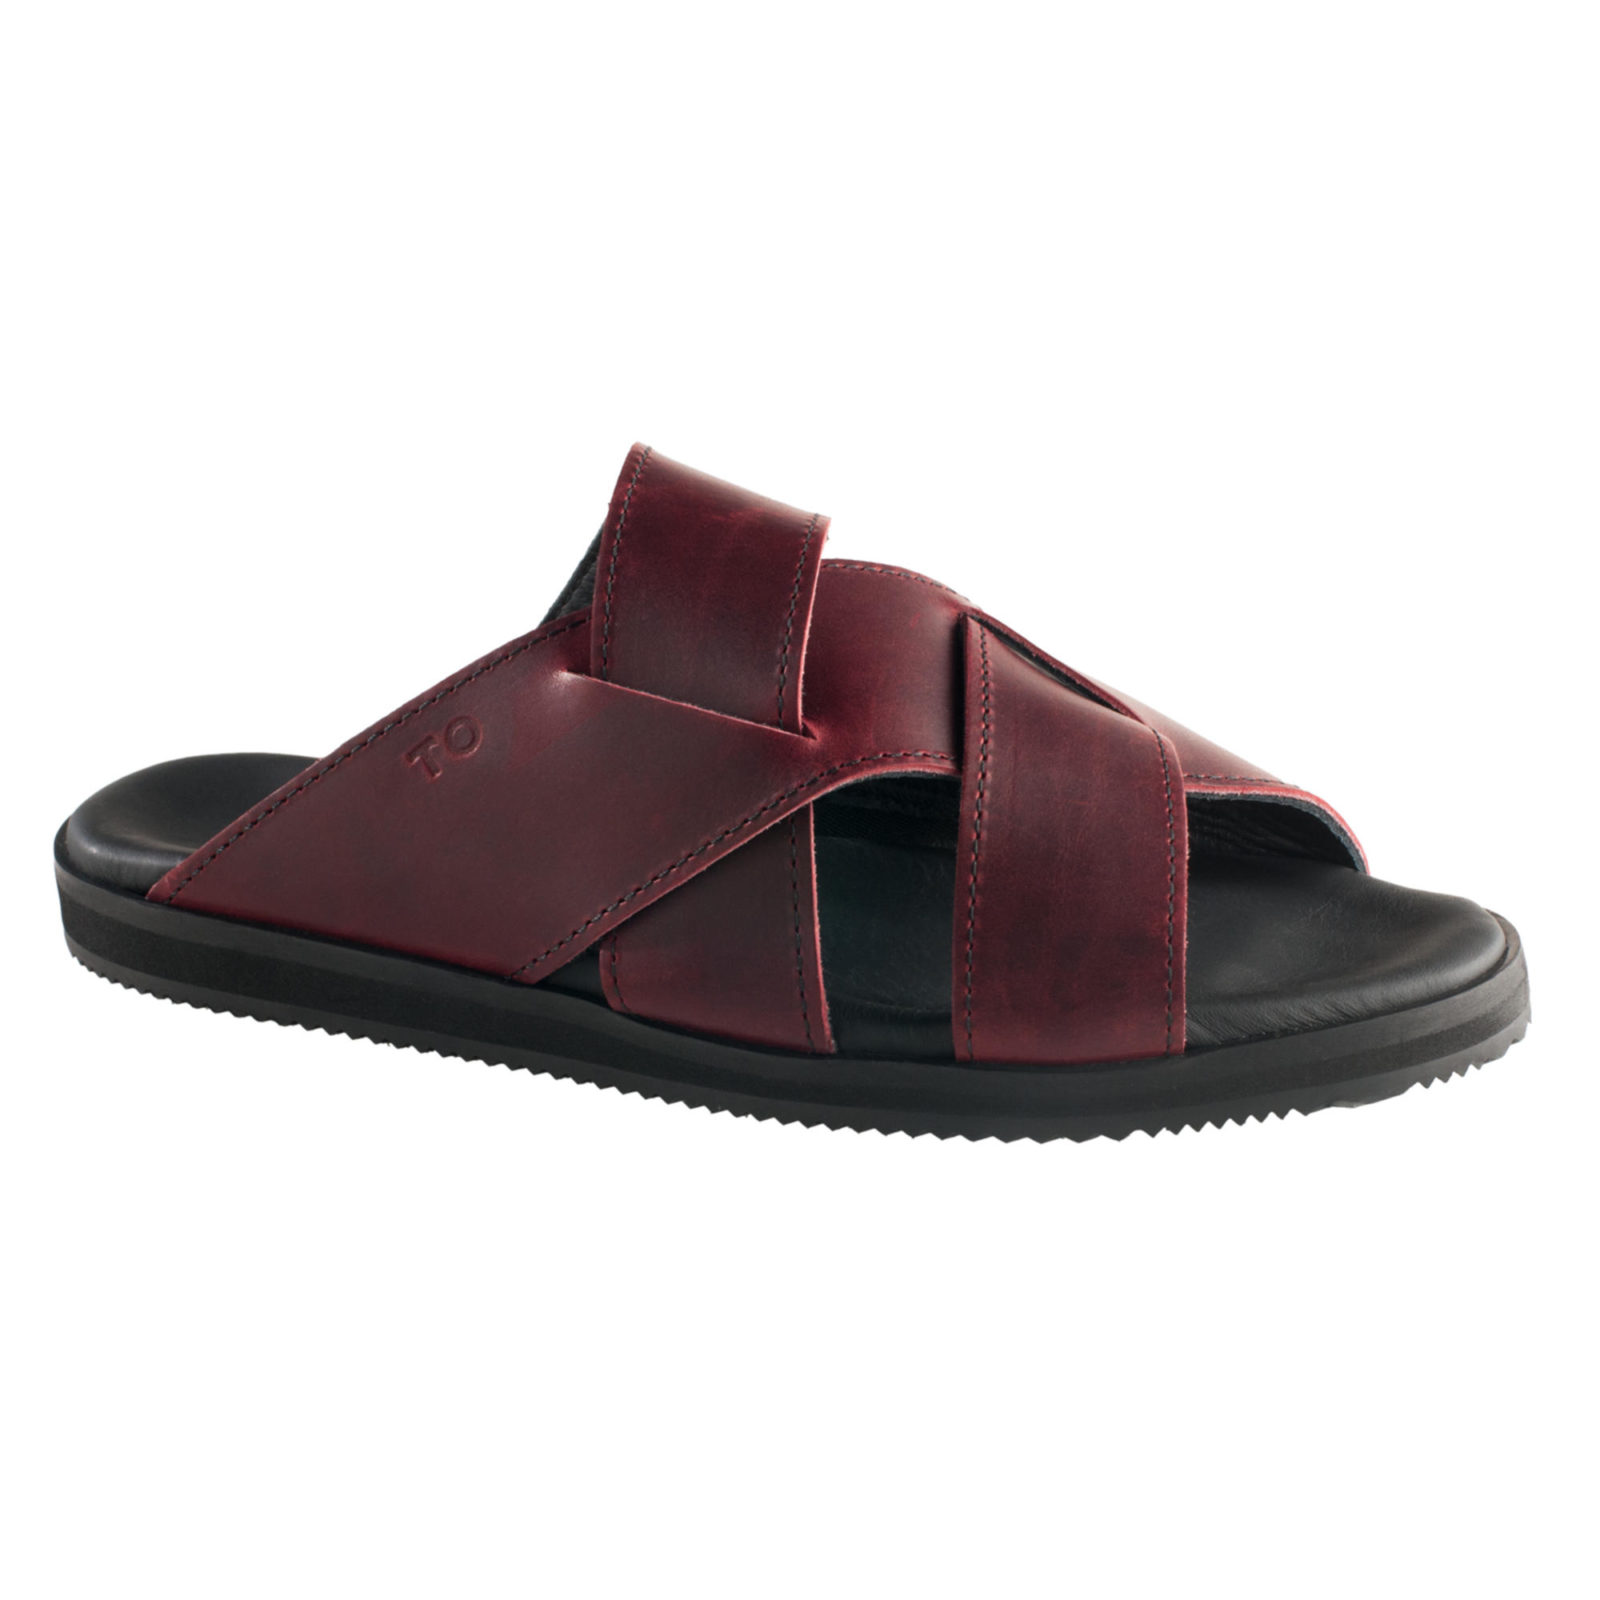 TOKU Helsinki for her bordeaux handmade leather shoes